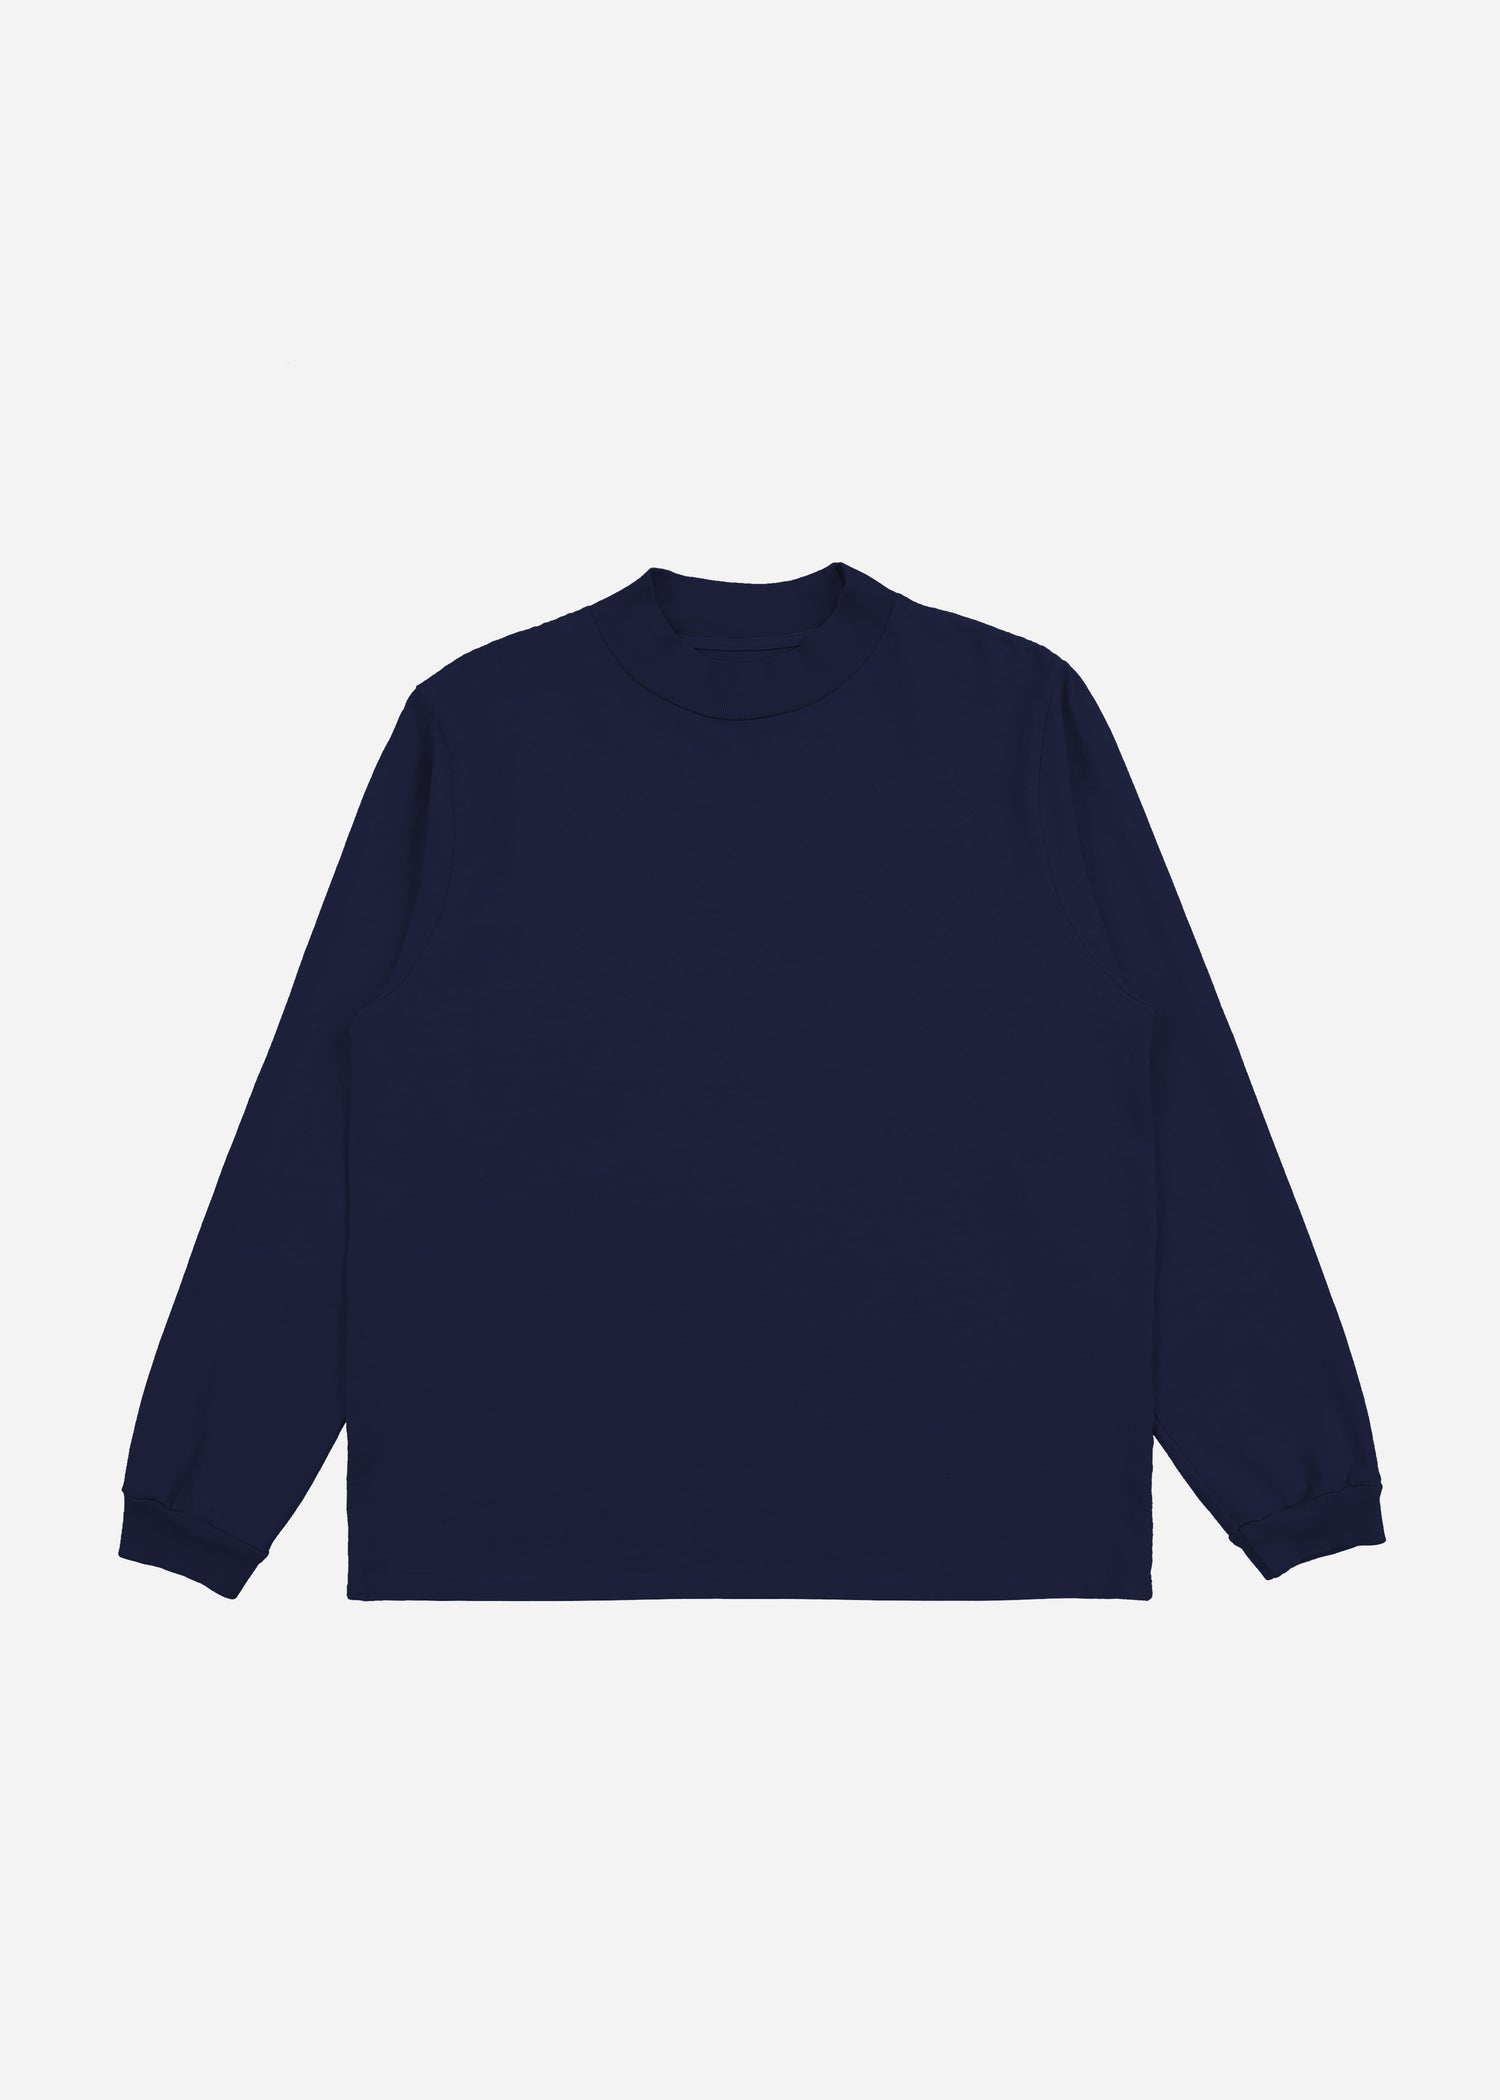 Mock Neck Long Sleeve Navy image-2